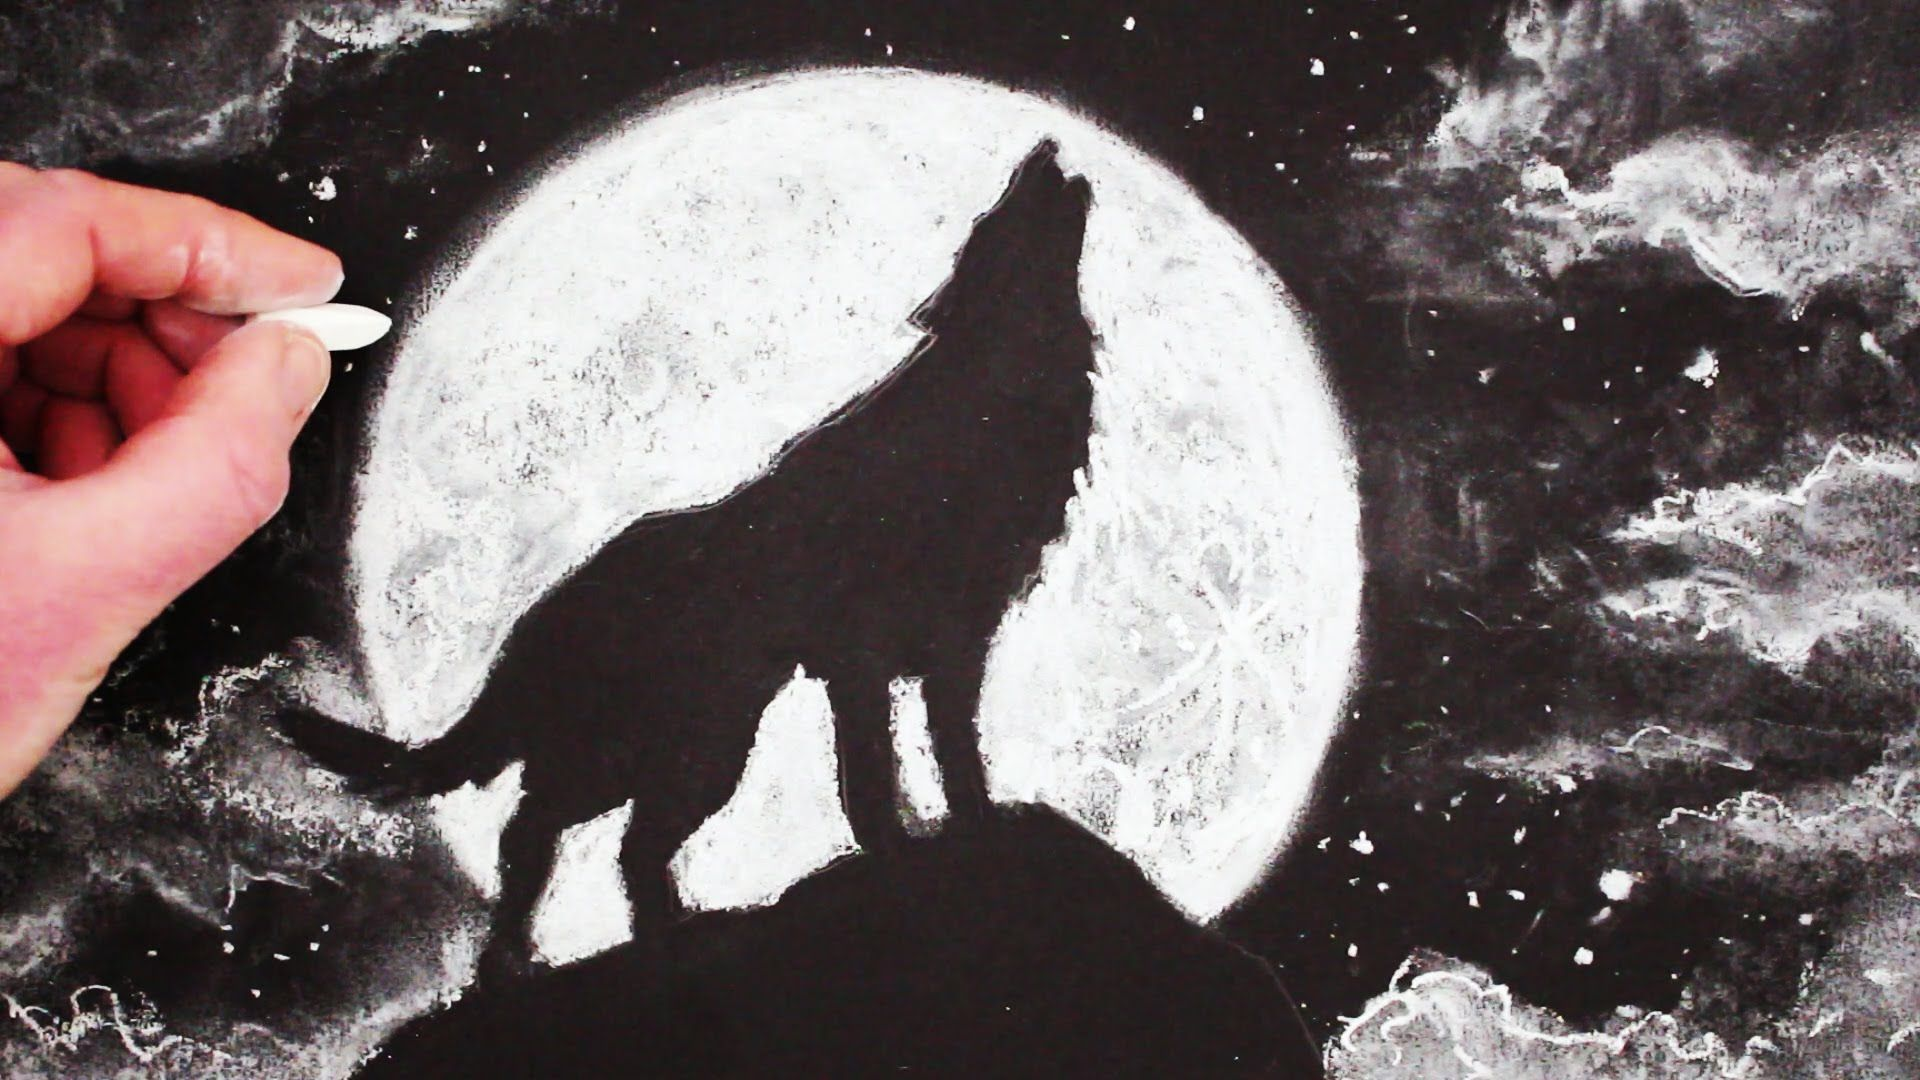 How To Draw A Halloween Wolf Howling At The Moon Simple How To Draw Halloween Idea Art Tutorial From Circ How To Draw A Wolf Moon Drawing Wolf Howling At Moon